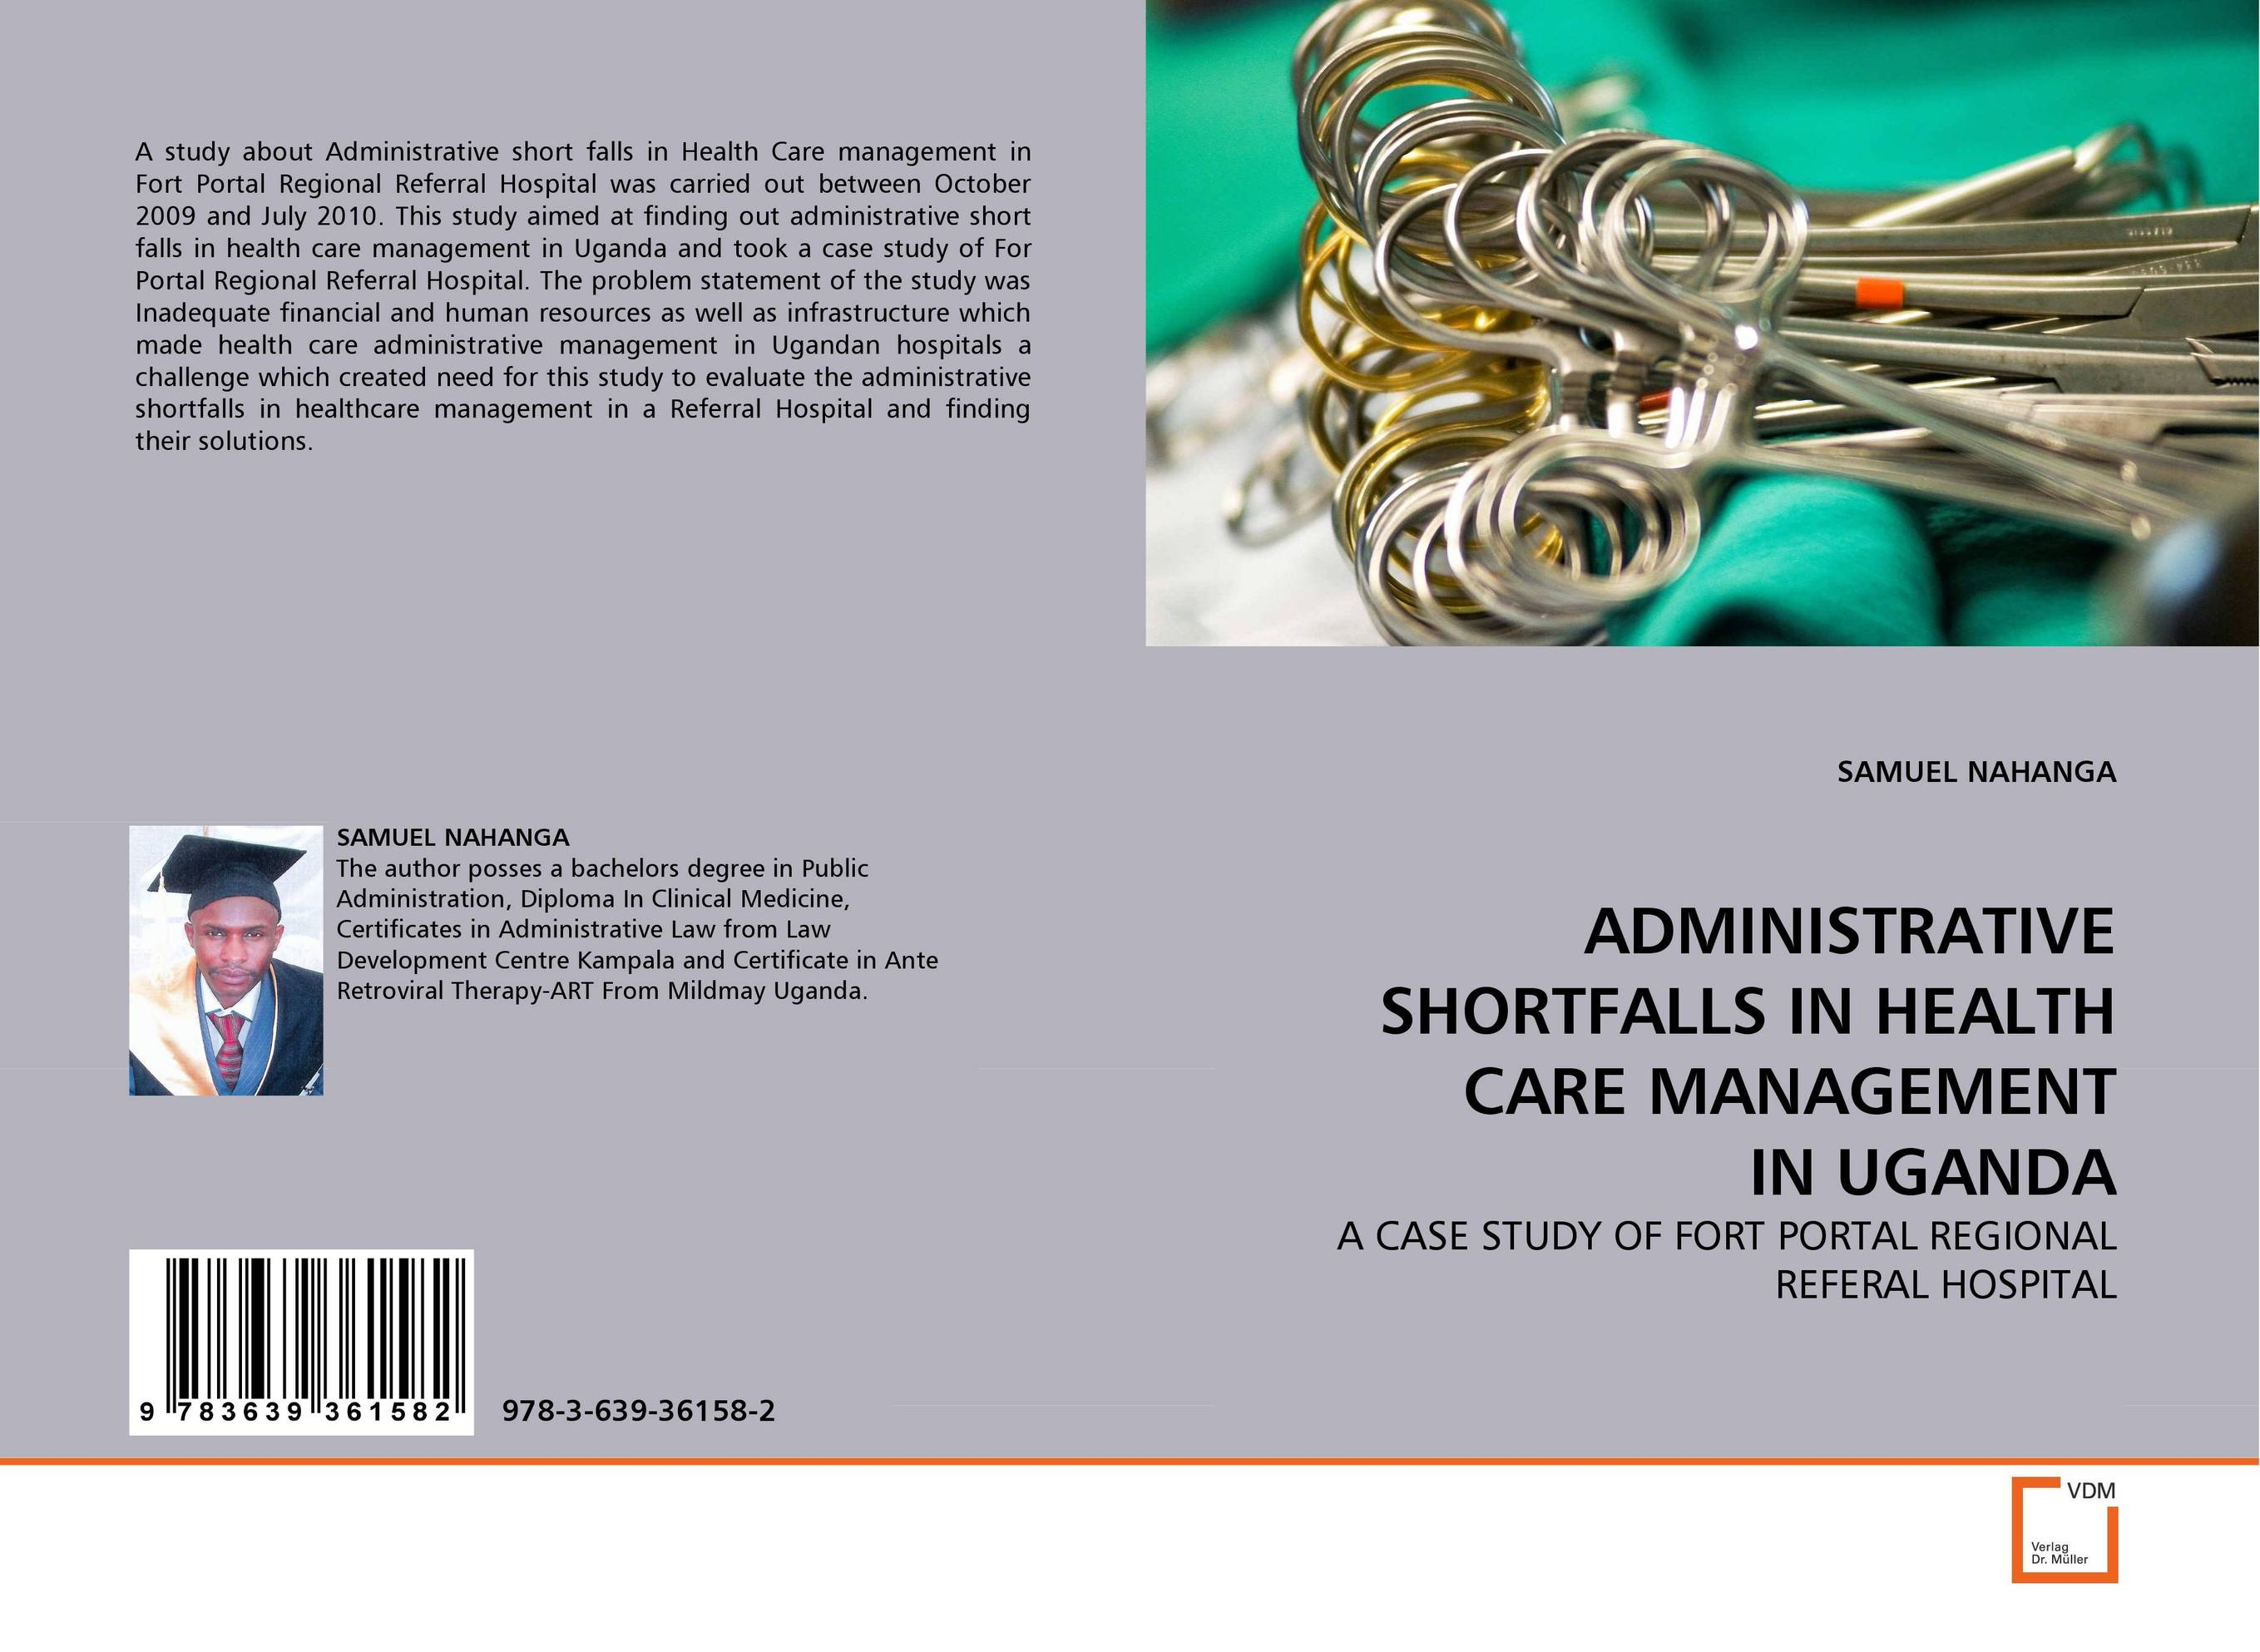 ADMINISTRATIVE SHORTFALLS IN HEALTH CARE MANAGEMENT IN UGANDA